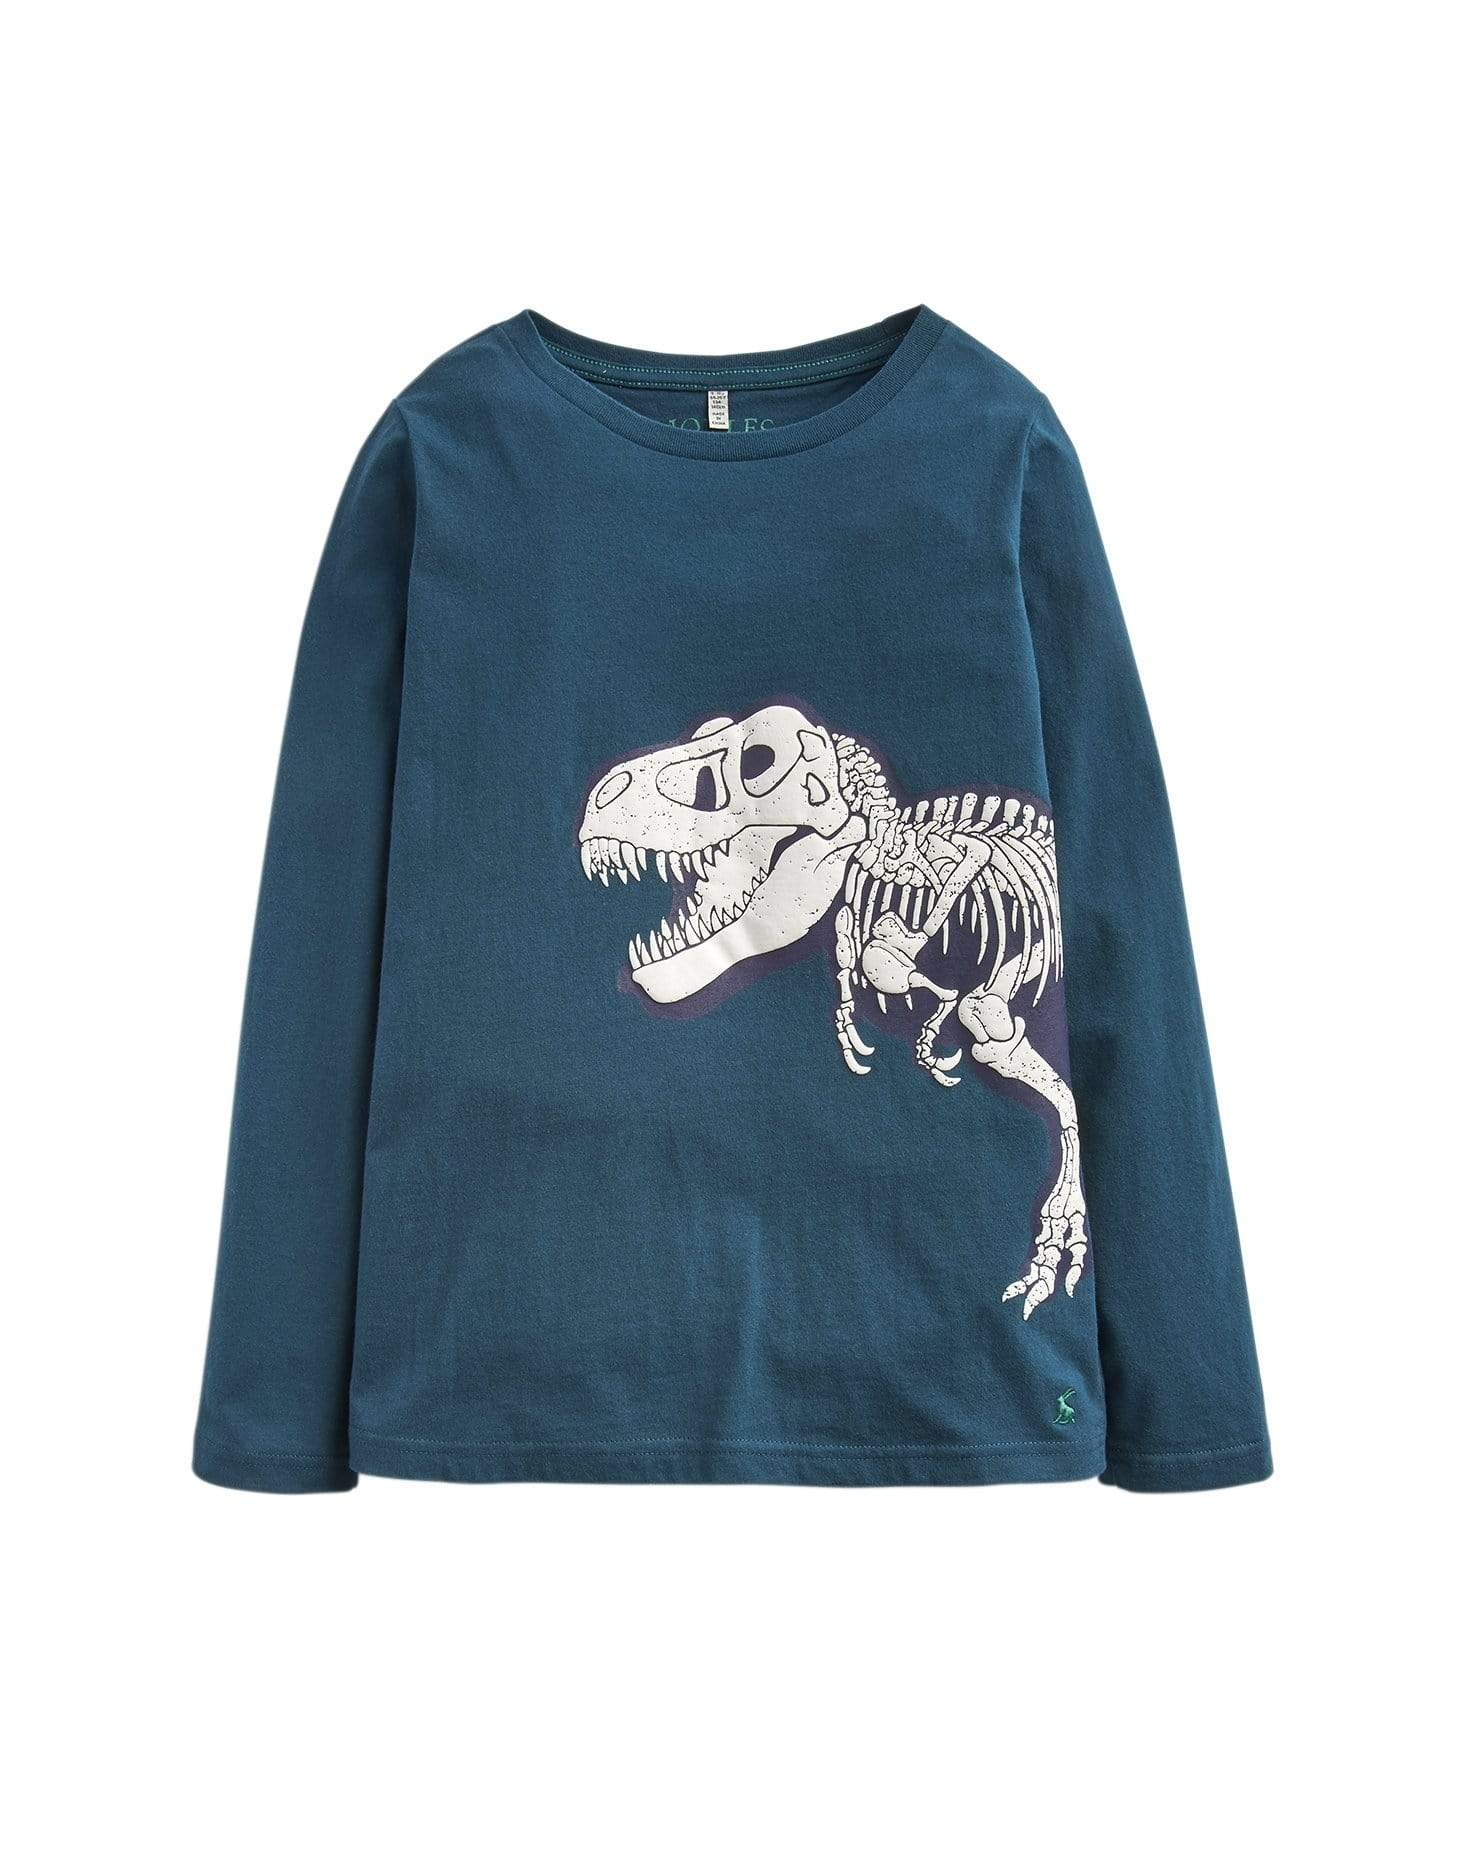 Joules Chandails Chandail vert avec dinosaure Green shirt with dinosaur